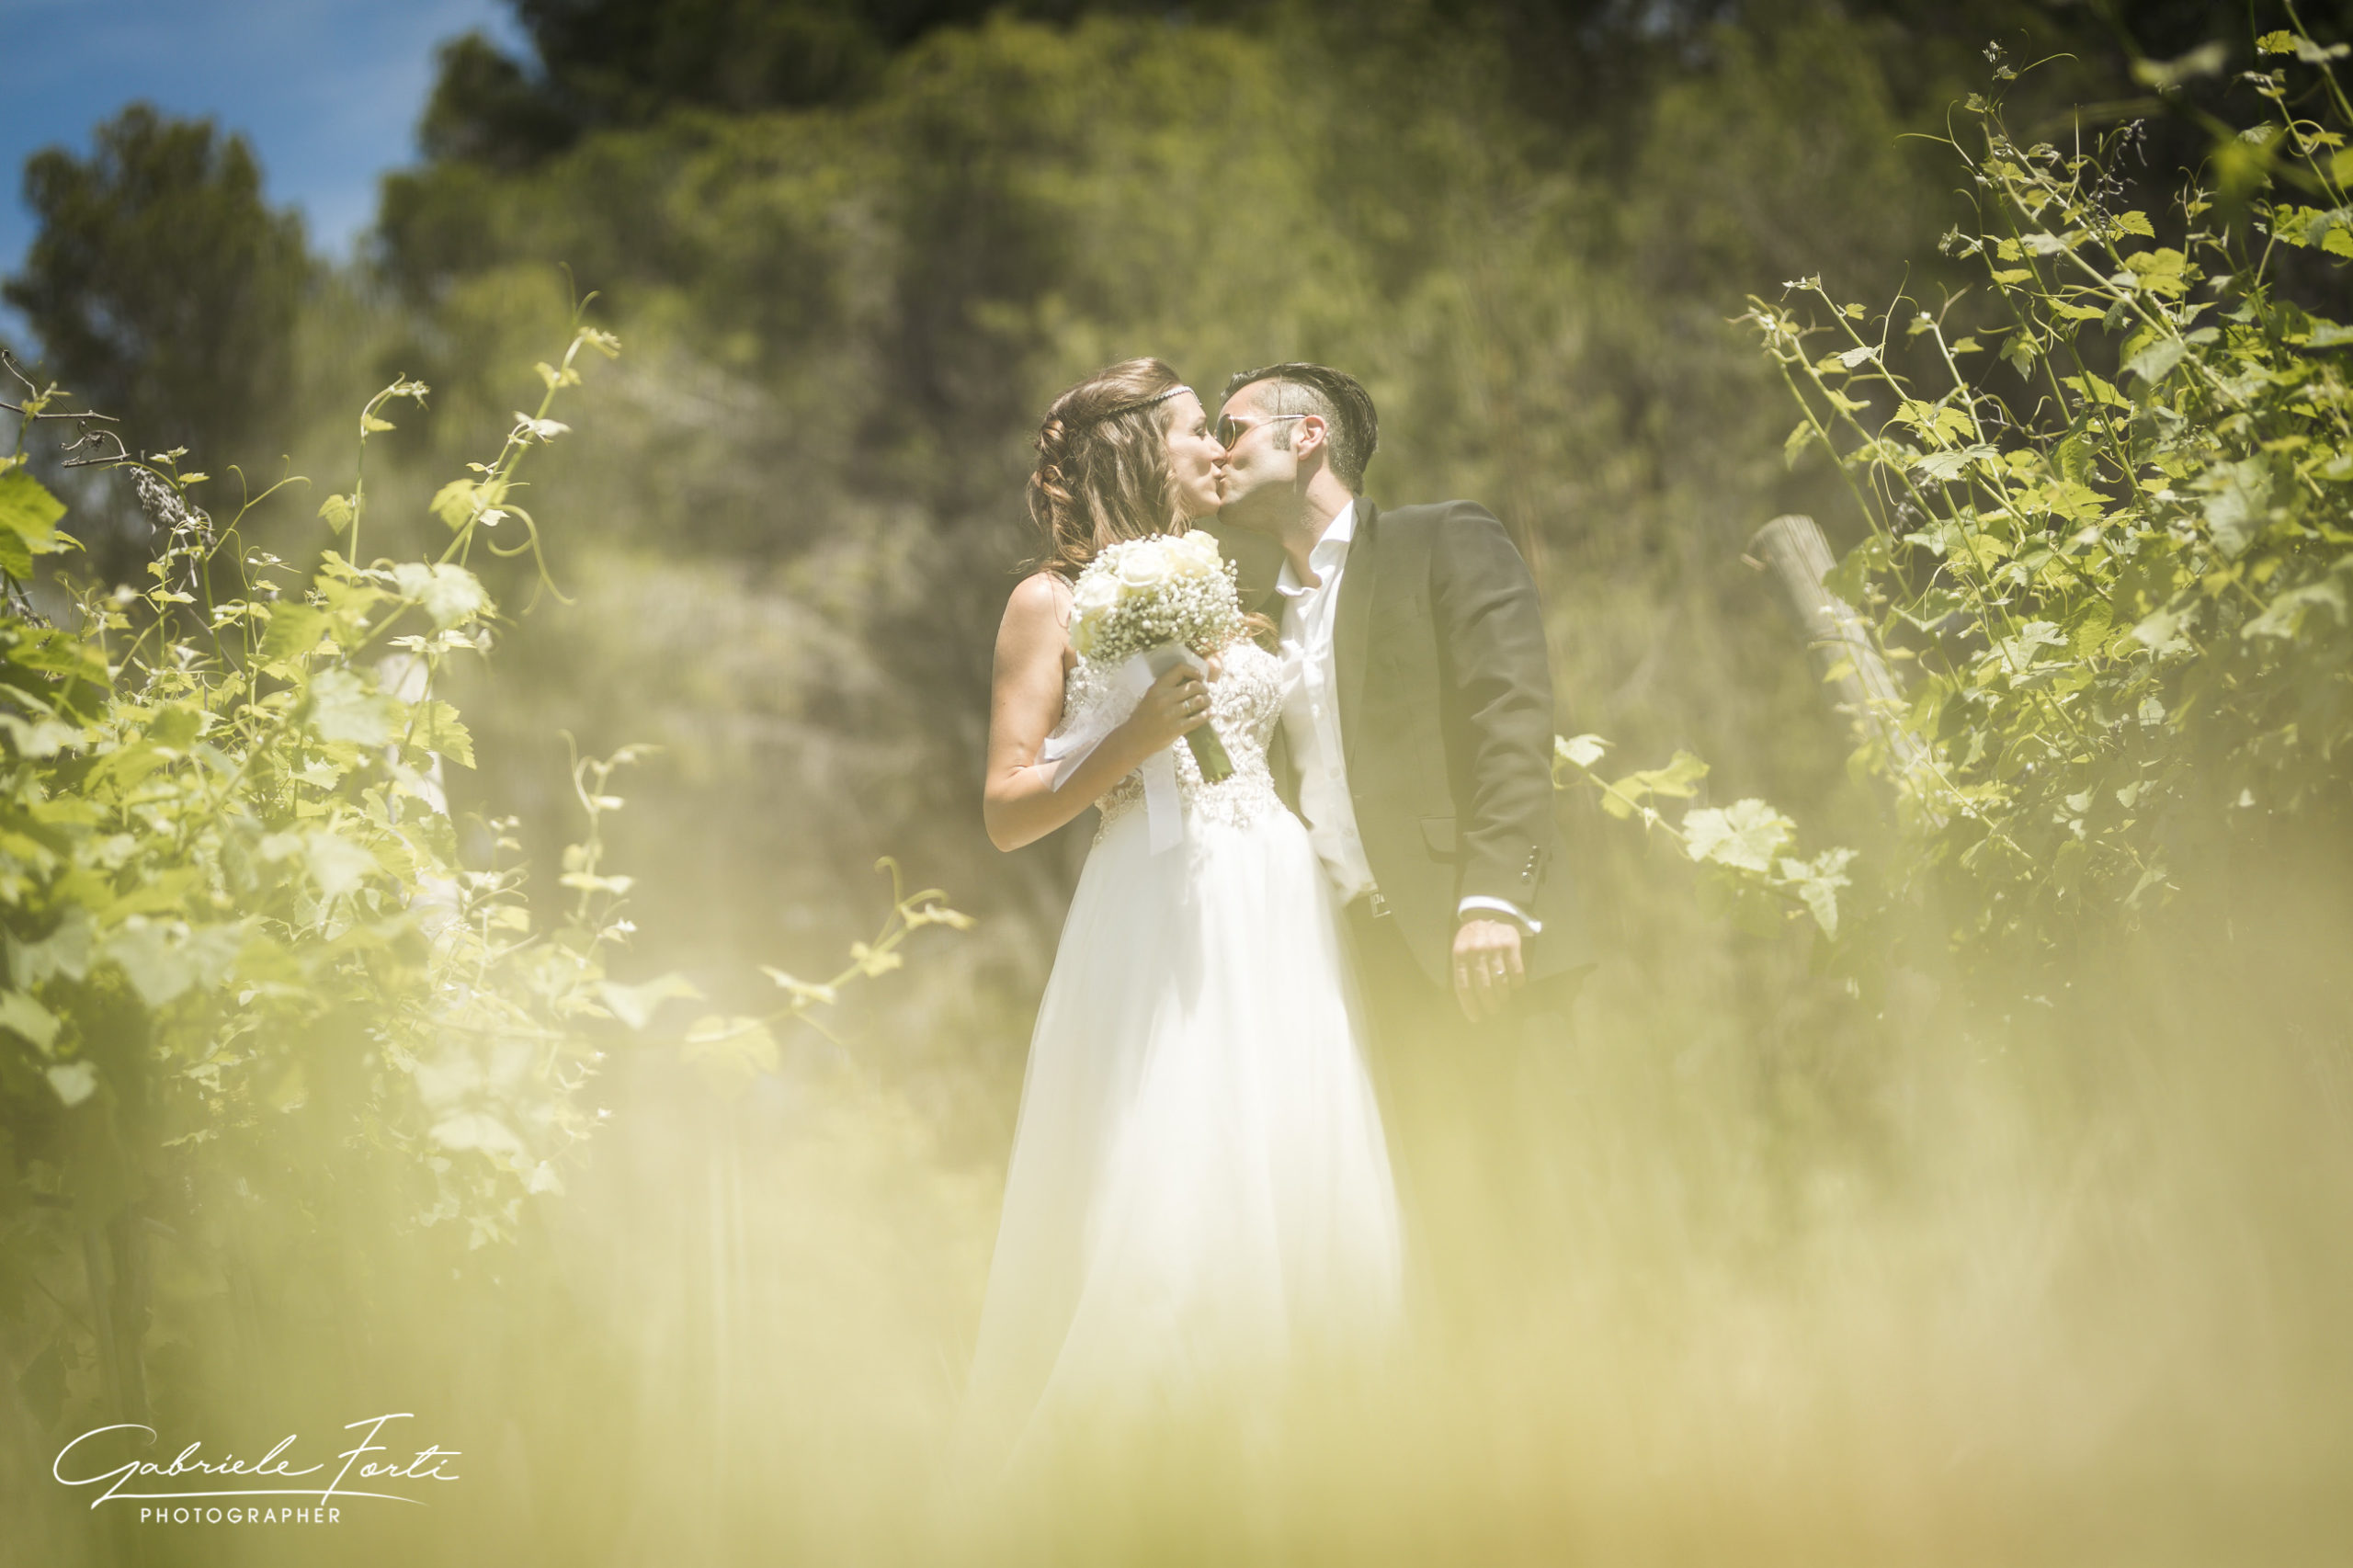 castello-banfi-wedding-piani-rossi-photo-shooting-italy-foto-forti-wedding-2